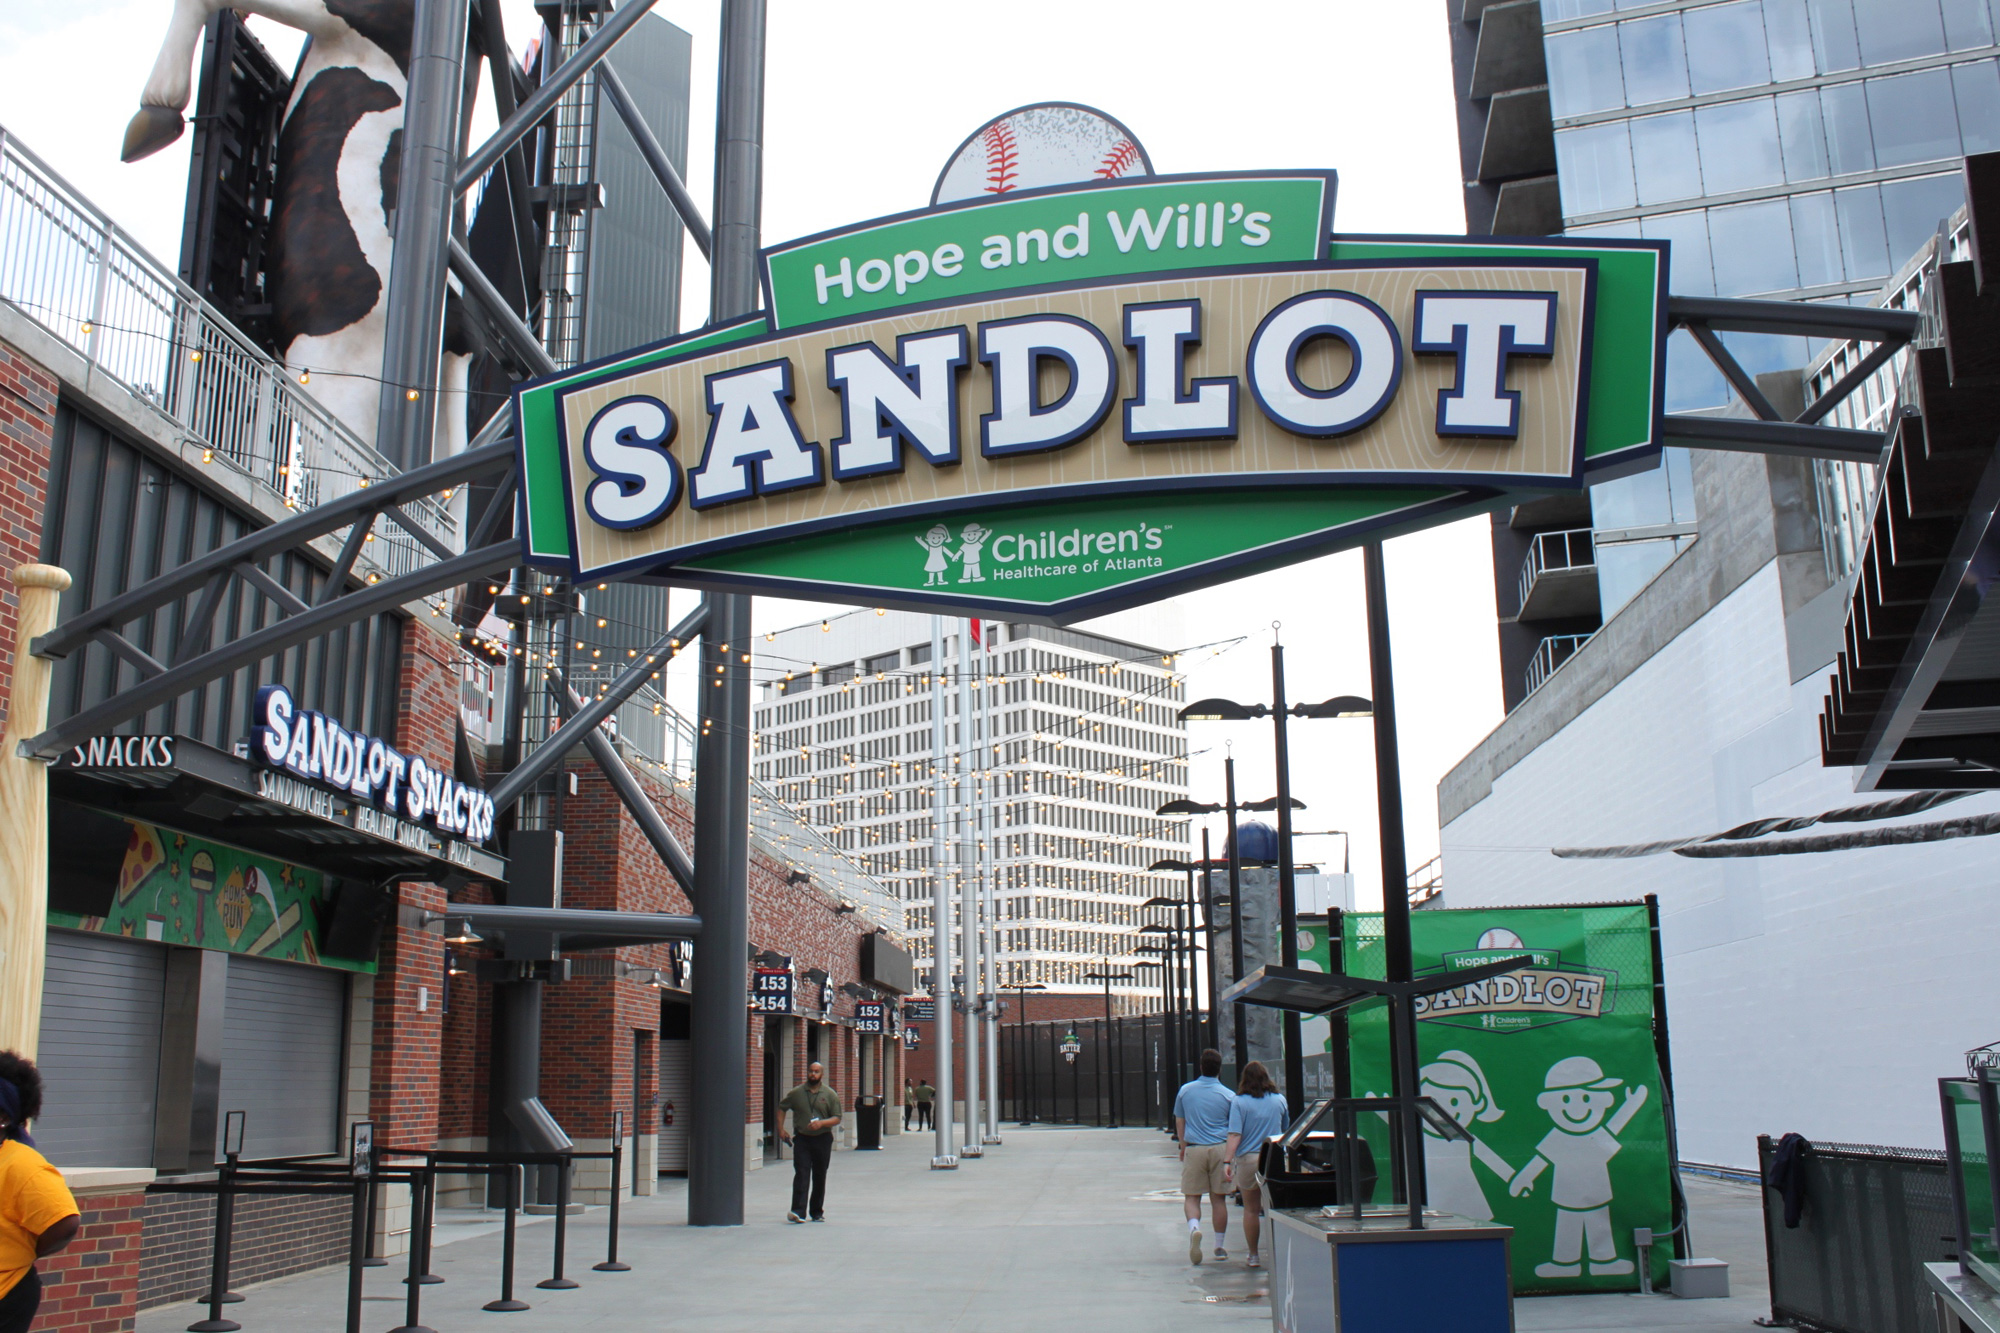 Hope and Will's Sandlot at SunTrust Park, home of the Atlanta Braves